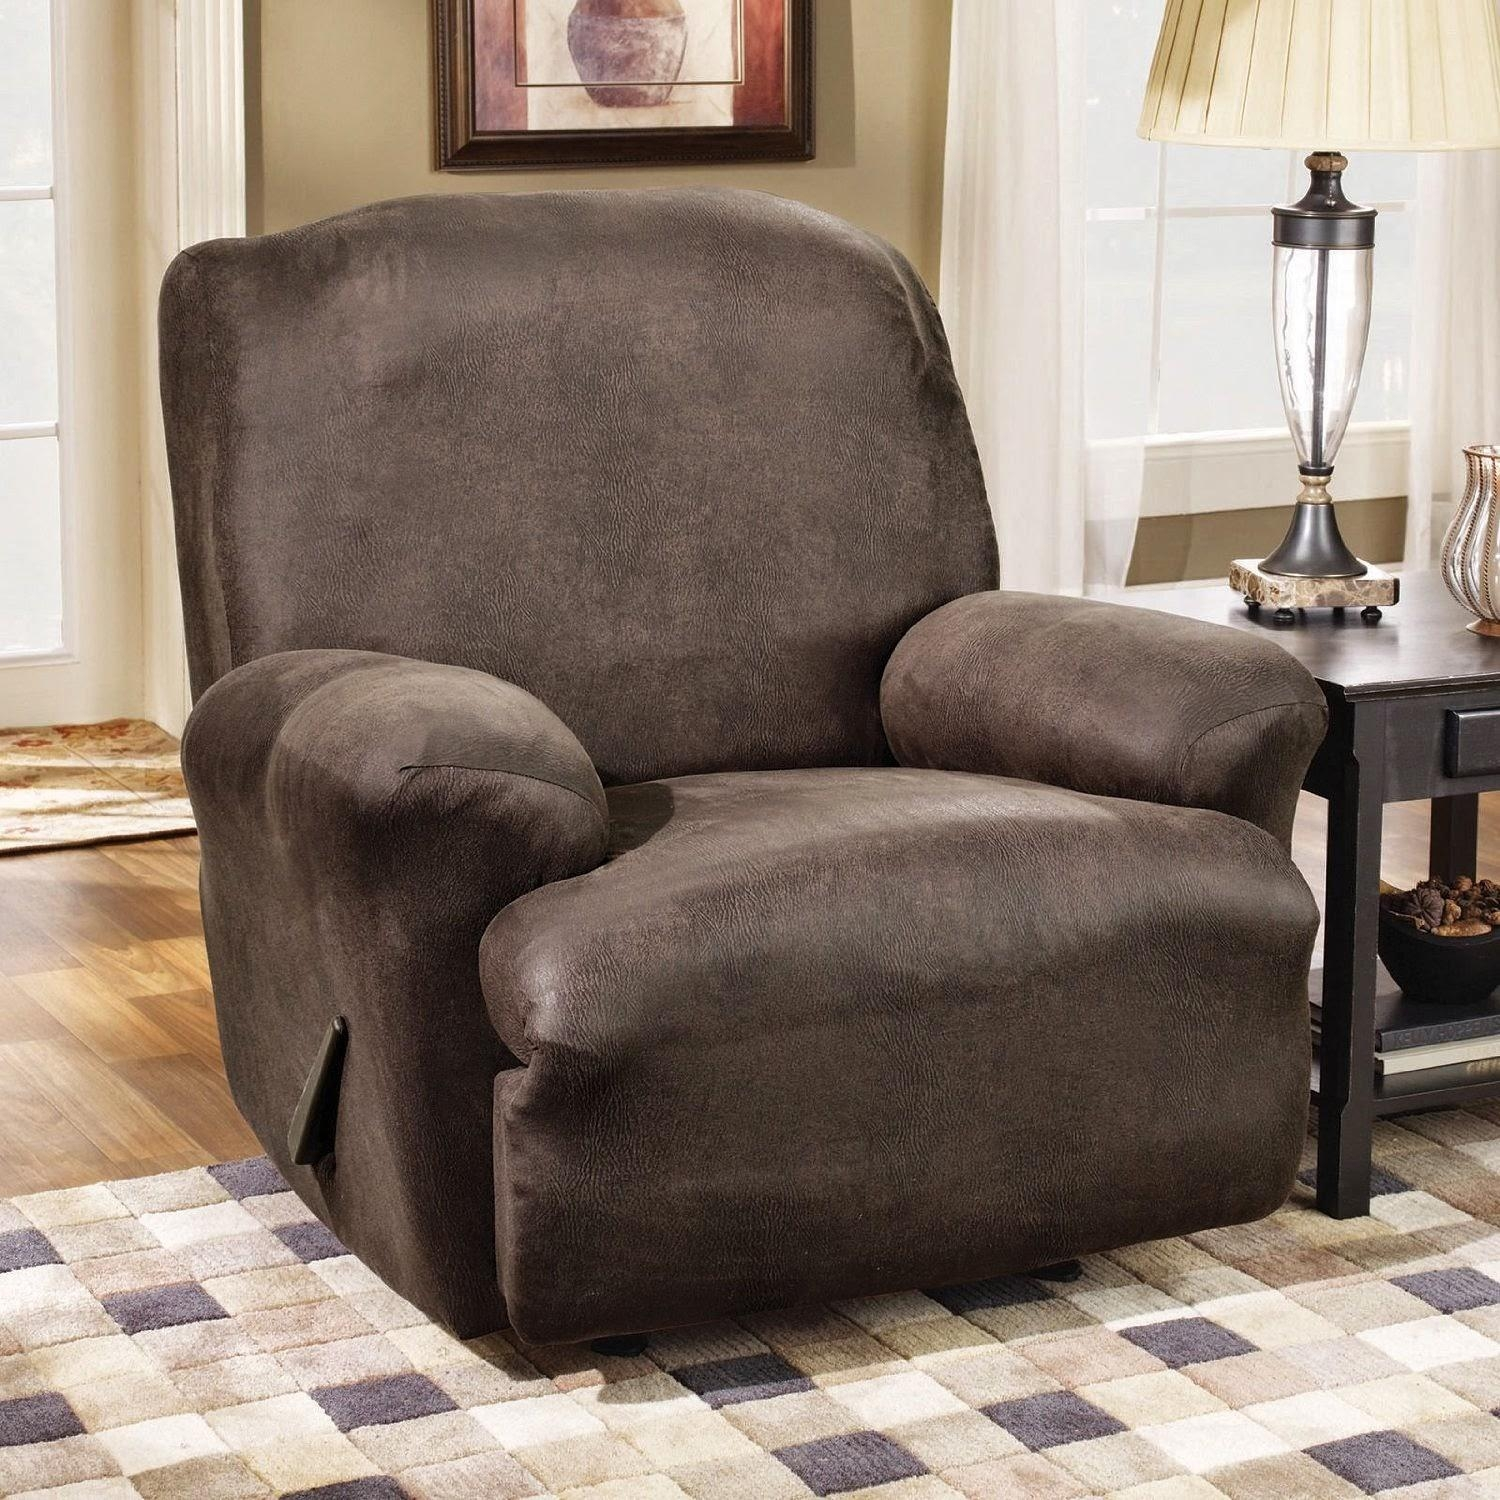 Sofas Center : Reclining Sofa Slipcover Awesome Images Throughout Recliner Sofa Slipcovers (View 2 of 20)